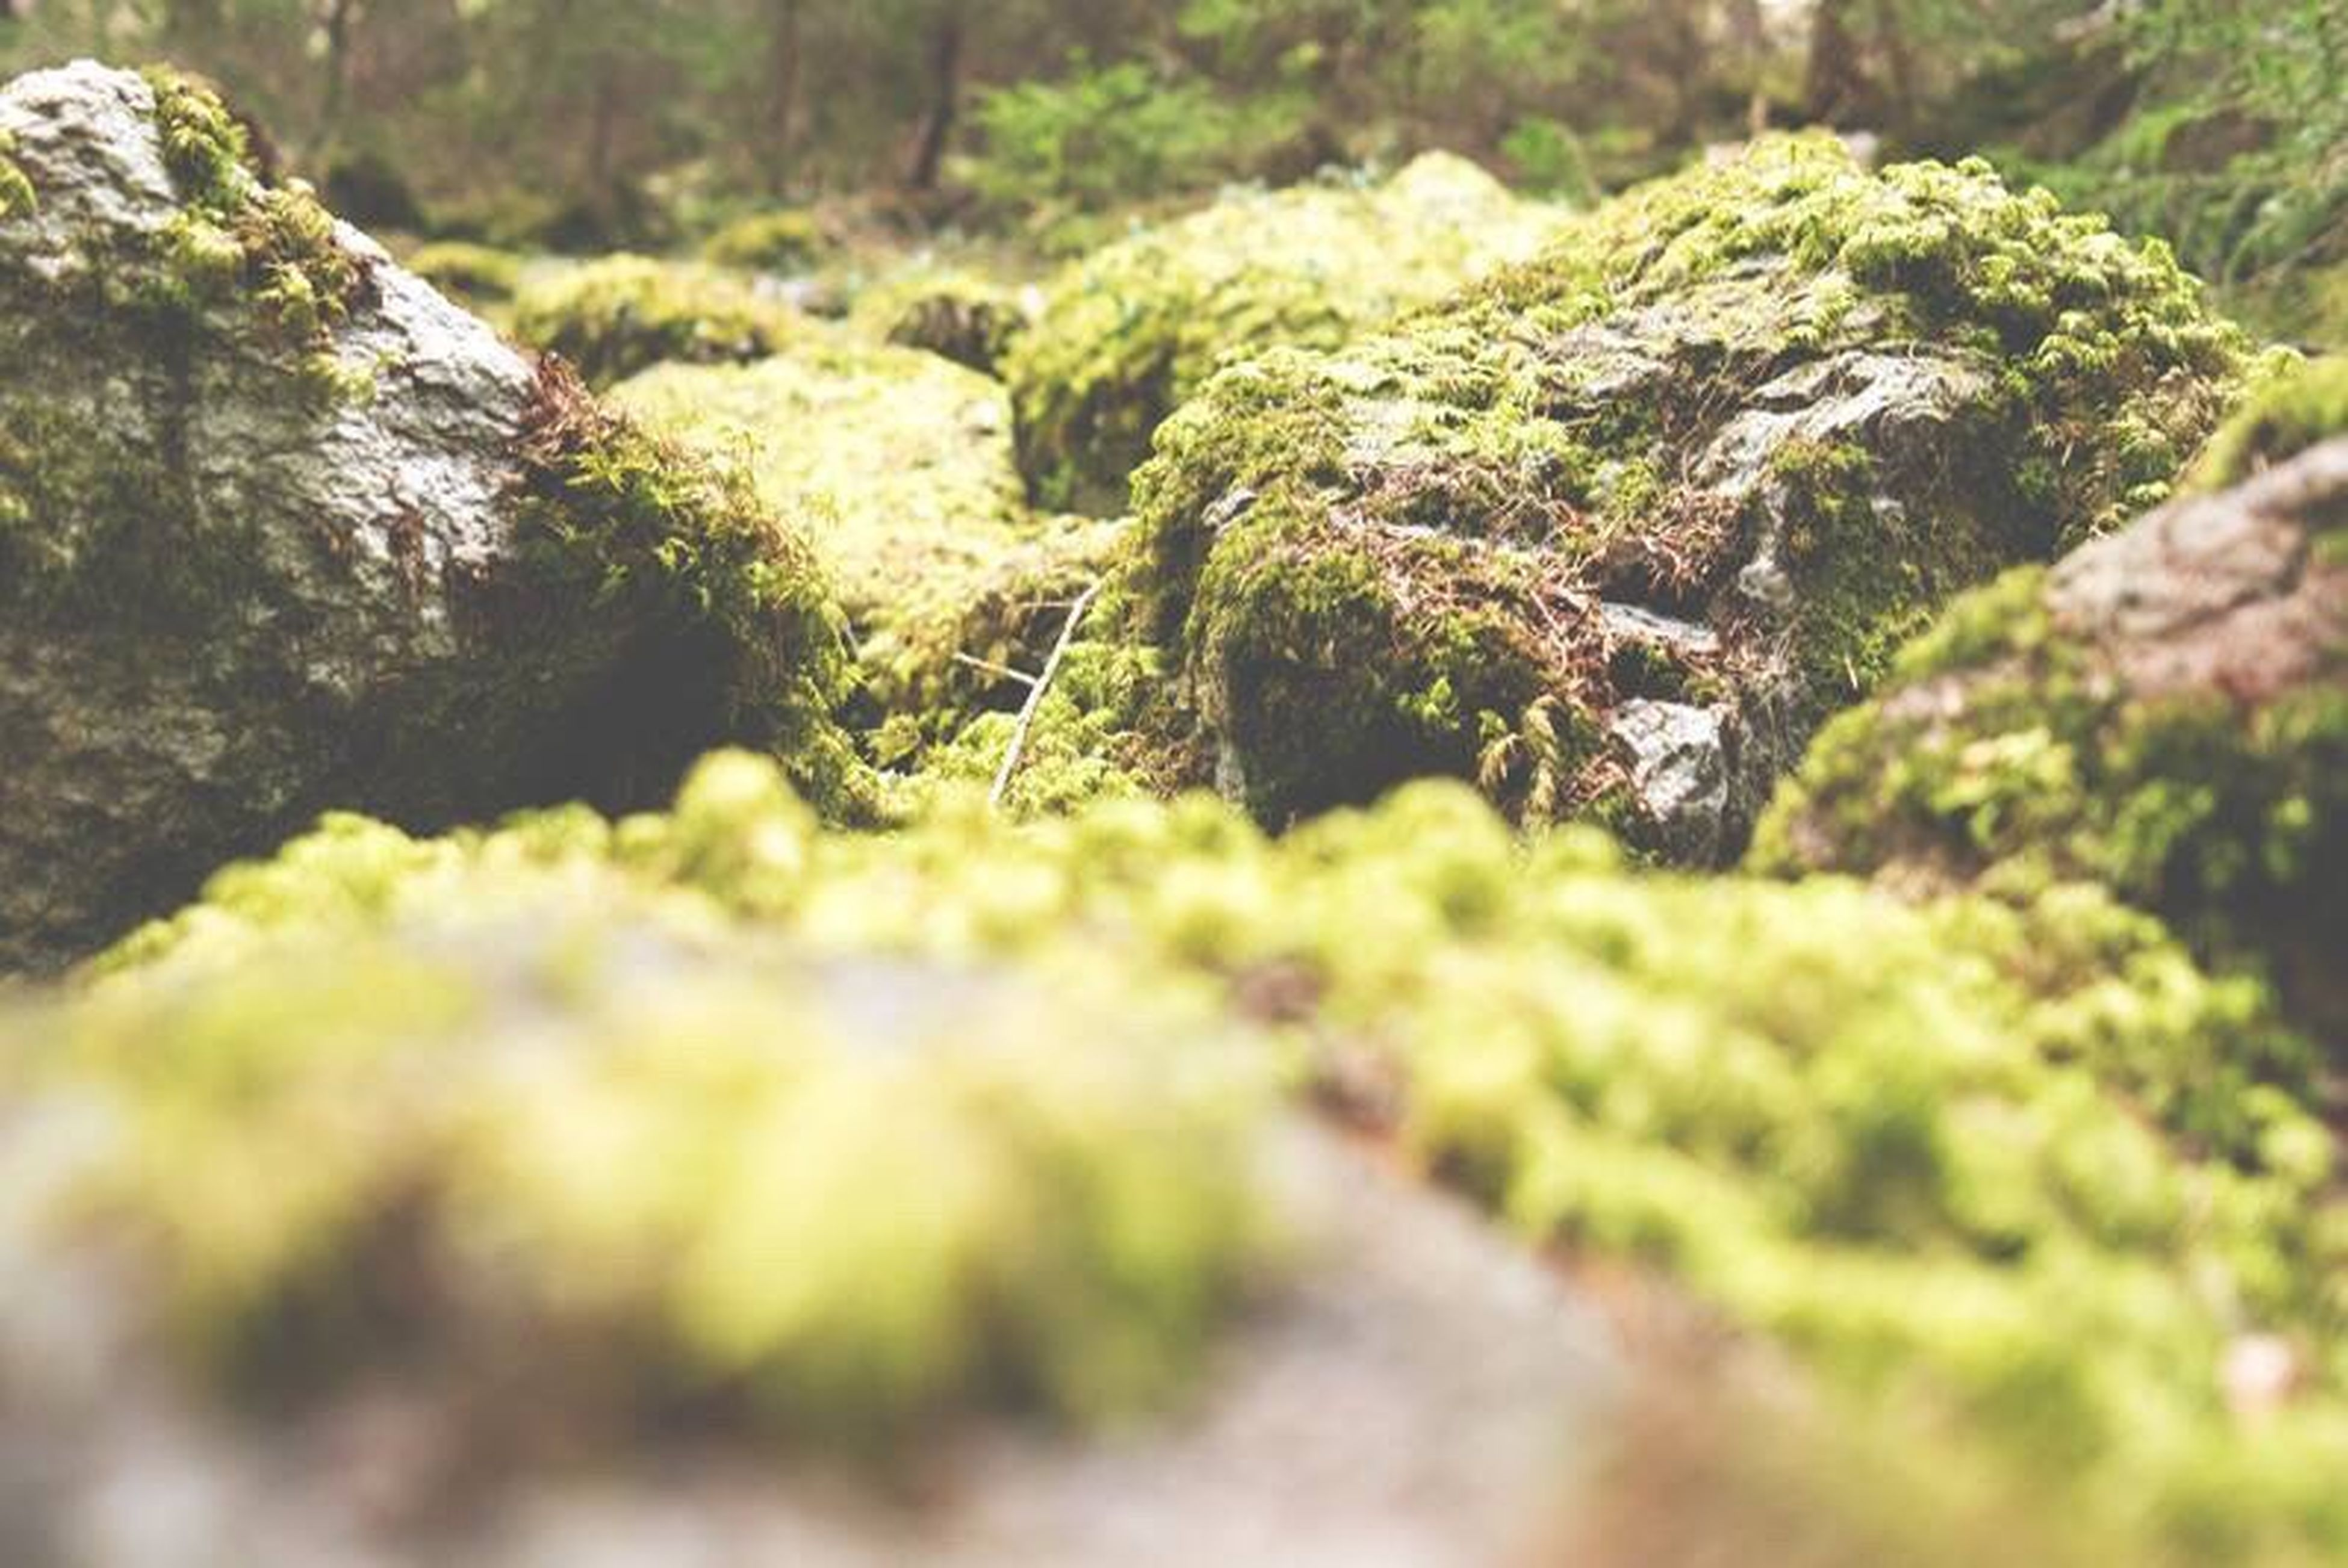 growth, nature, beauty in nature, selective focus, forest, tranquility, plant, tree, stream, tranquil scene, moss, green color, day, scenics, outdoors, no people, rock - object, surface level, flower, freshness